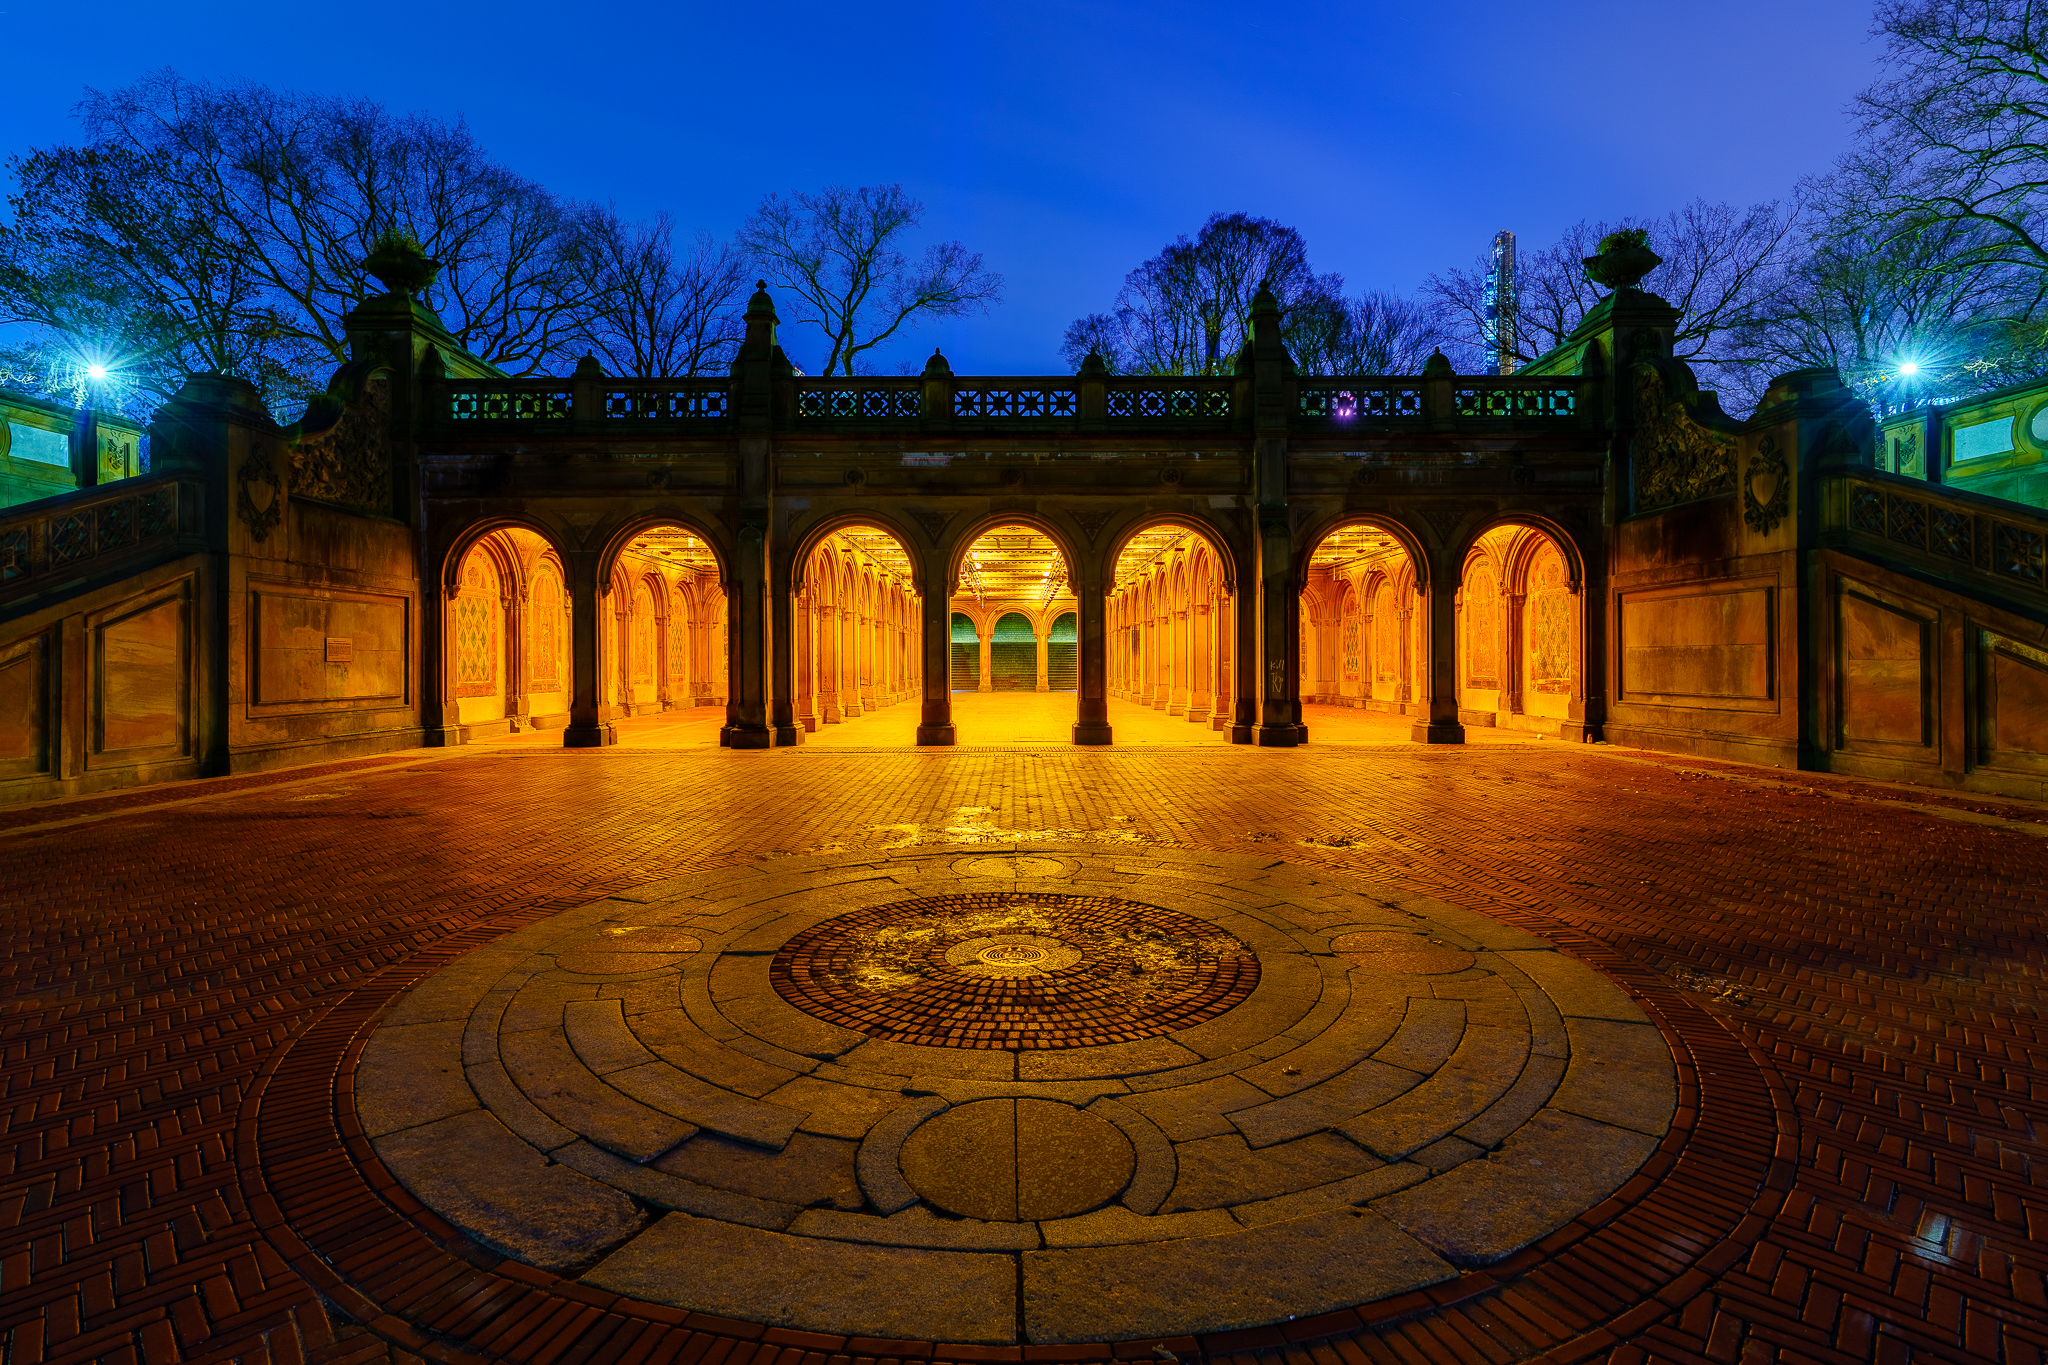 a photography of bethesda terrace in central park new york at night